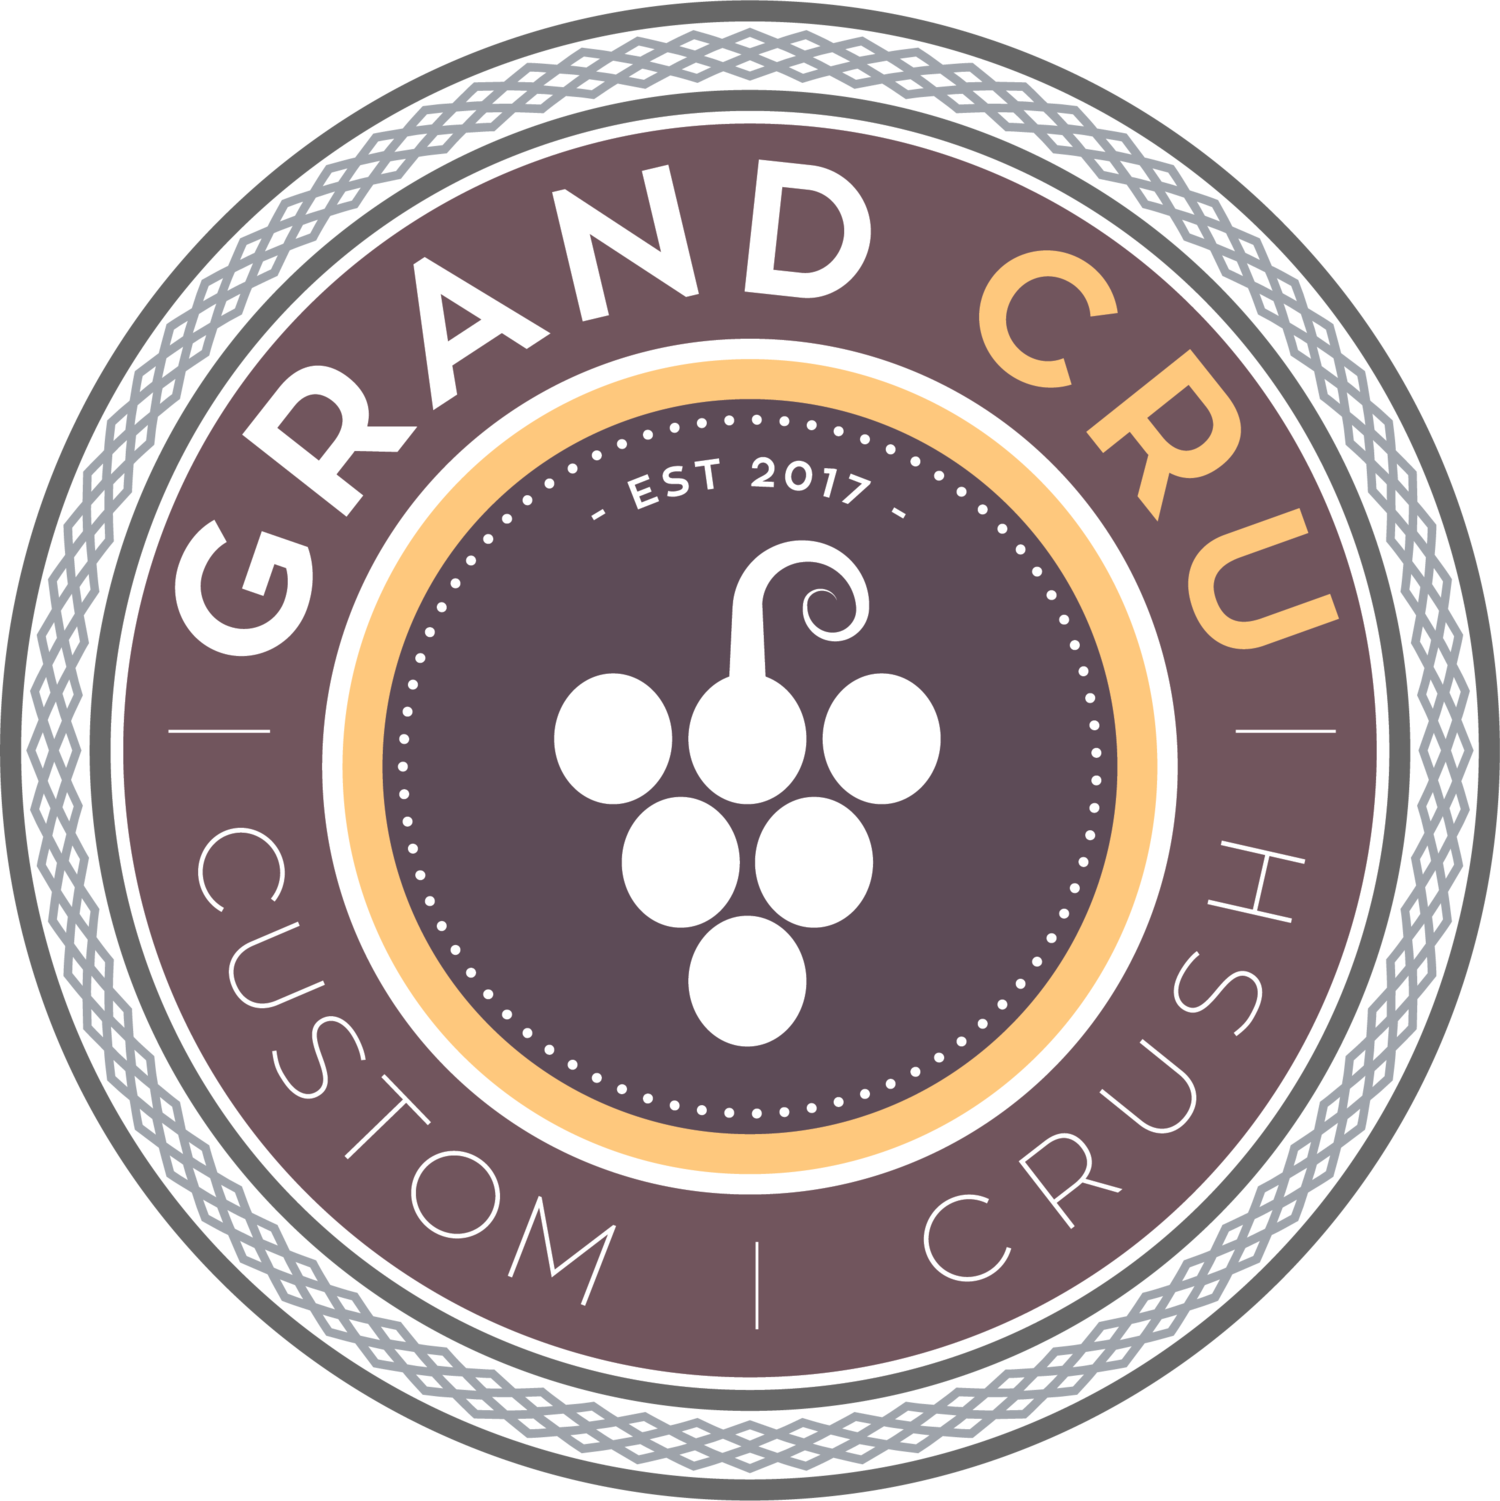 Grand Cru Custom Crush.